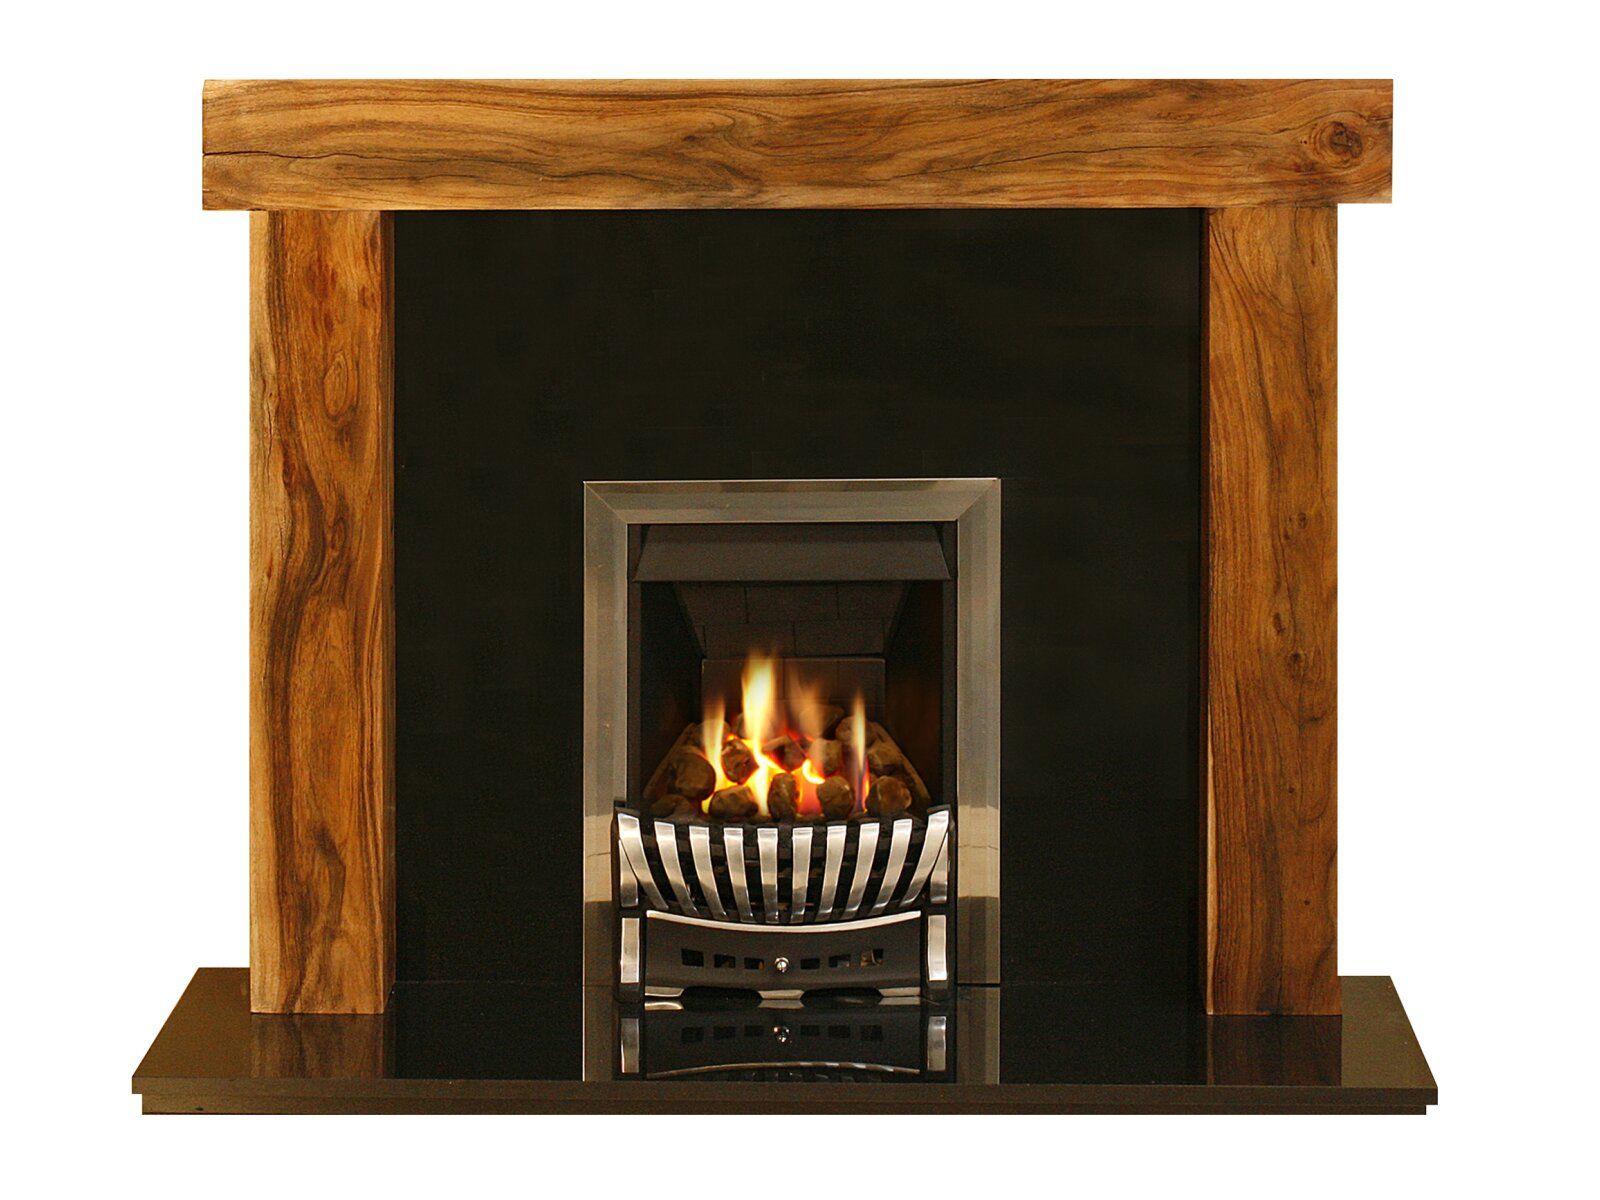 adam fenchurch fire surround set in acacia and black. Black Bedroom Furniture Sets. Home Design Ideas